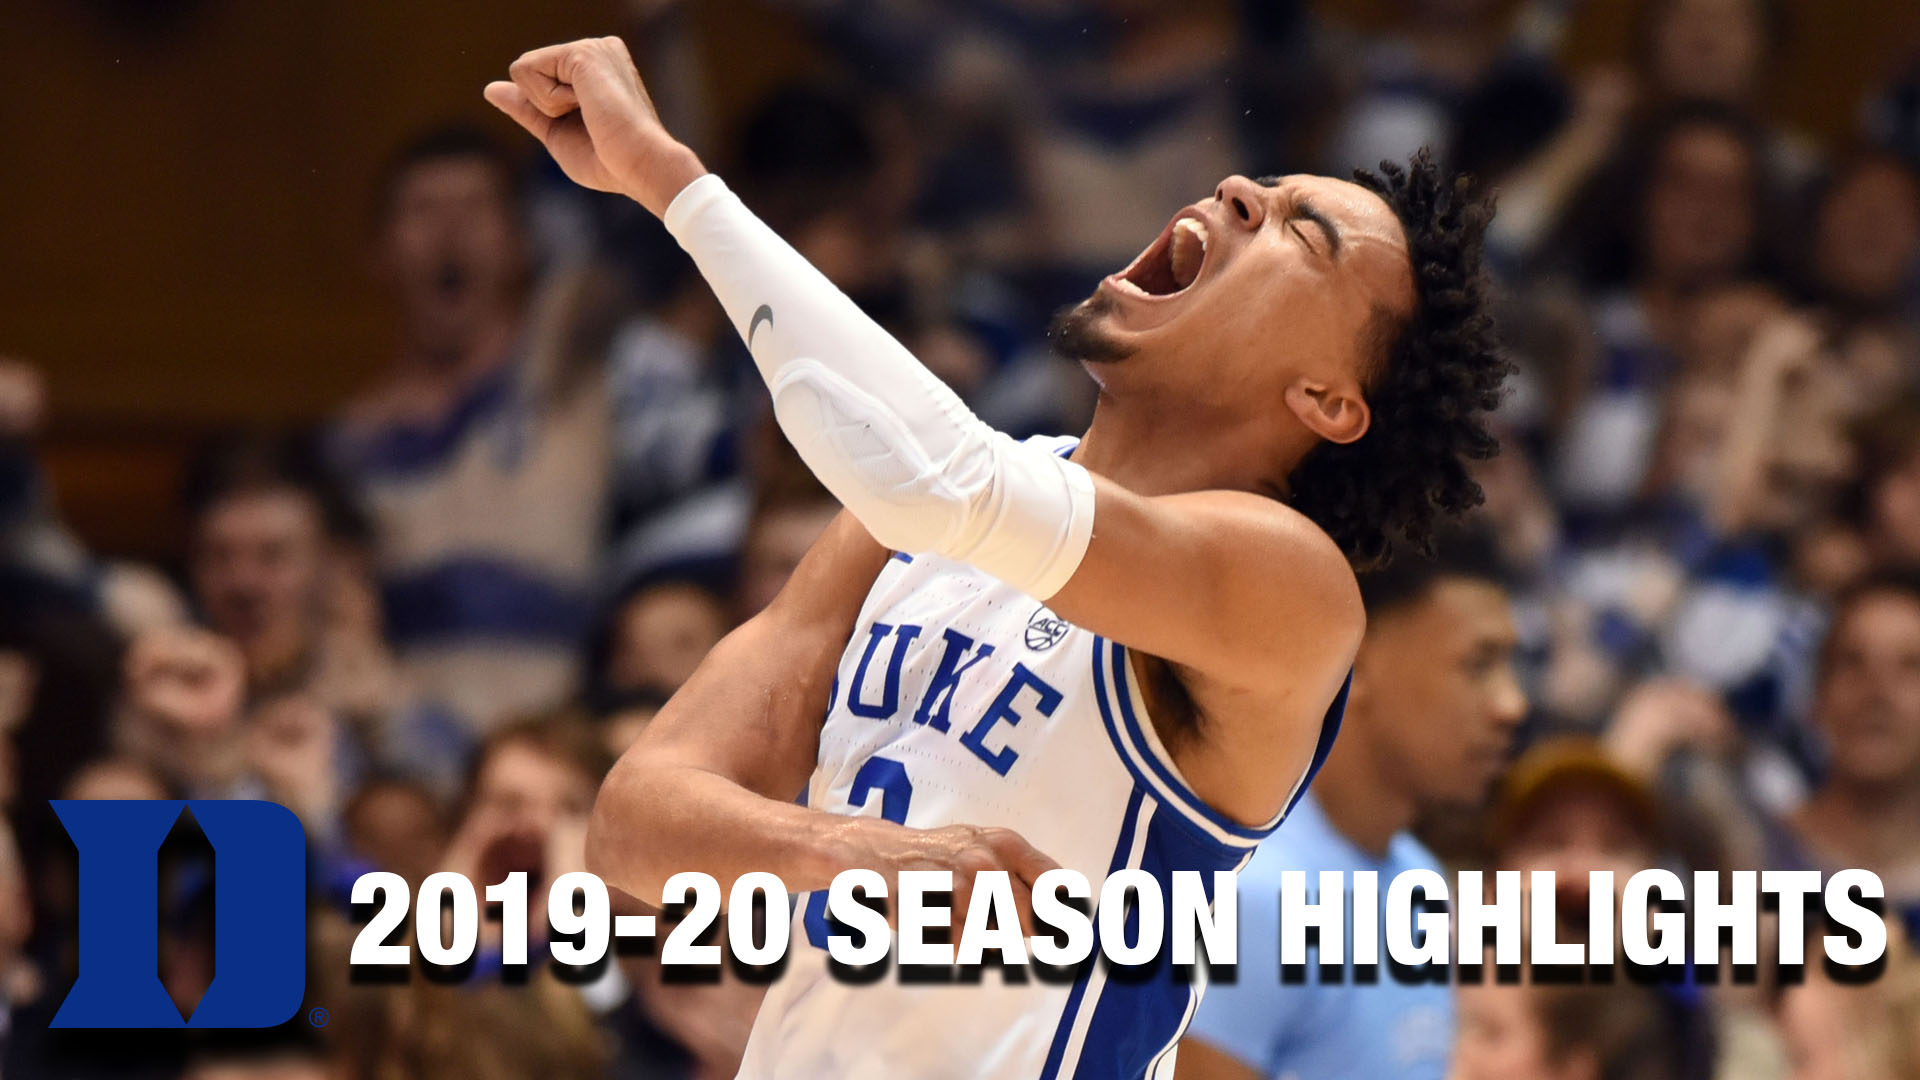 Tre Jones (@Tre3Jones) 2019-20 Season Highlights